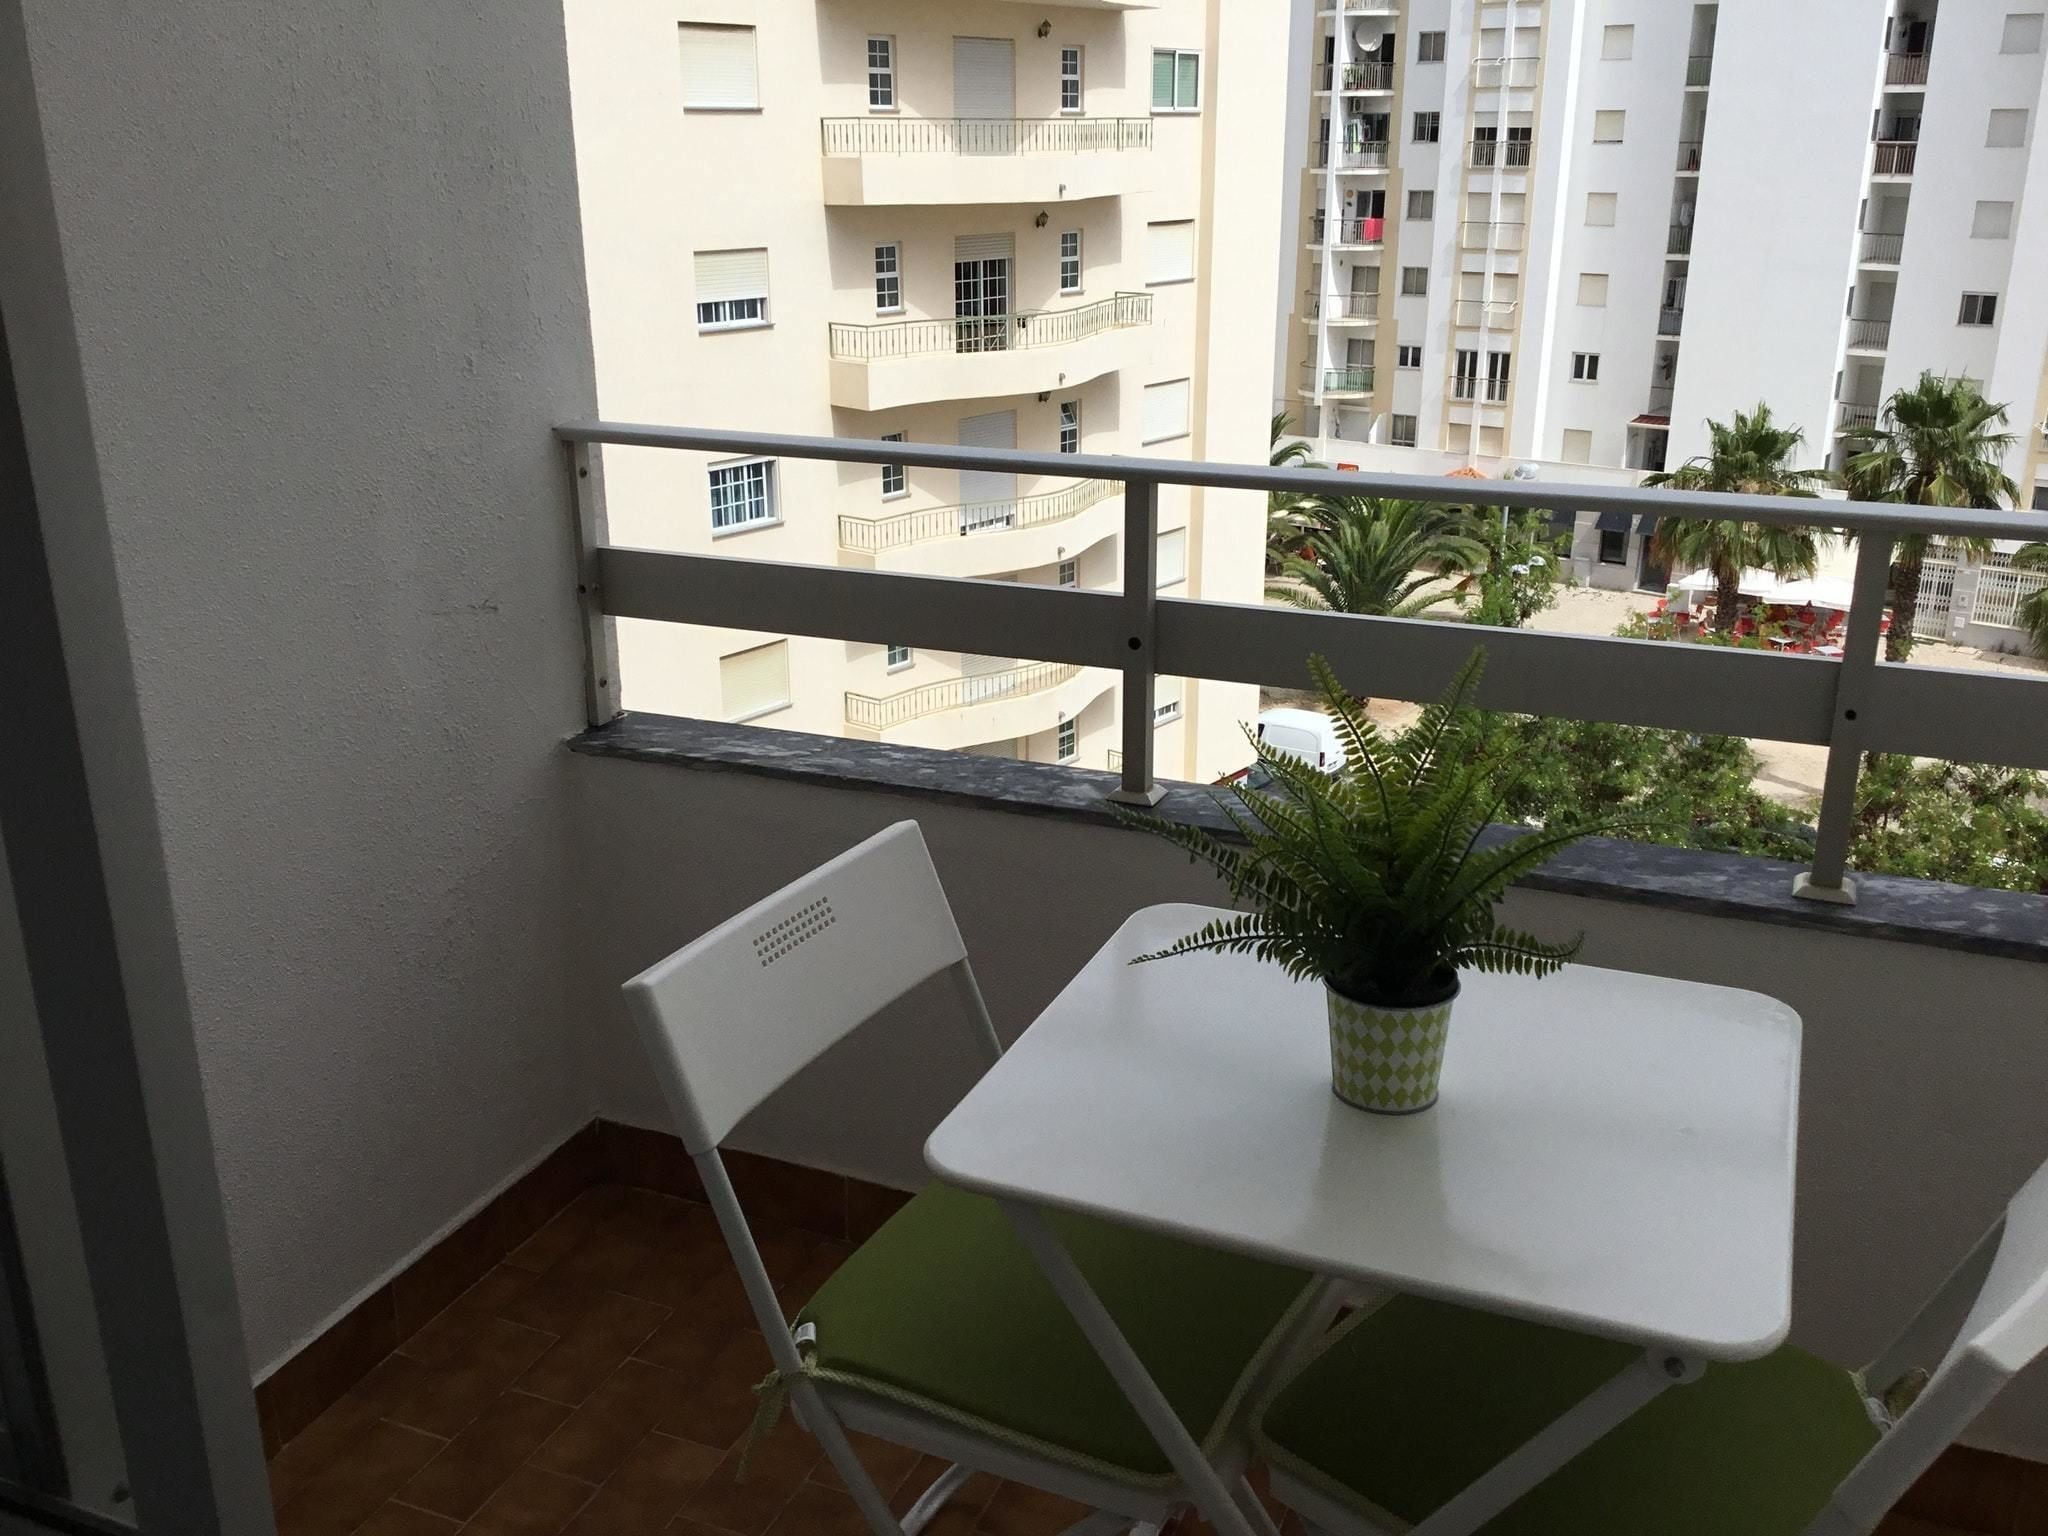 Apartment With One Bedroom In Armacao De Pera With Wonderful City View And Balcony 100 M From The Beach Precos Promocoes E Comentarios Expedia Com Br